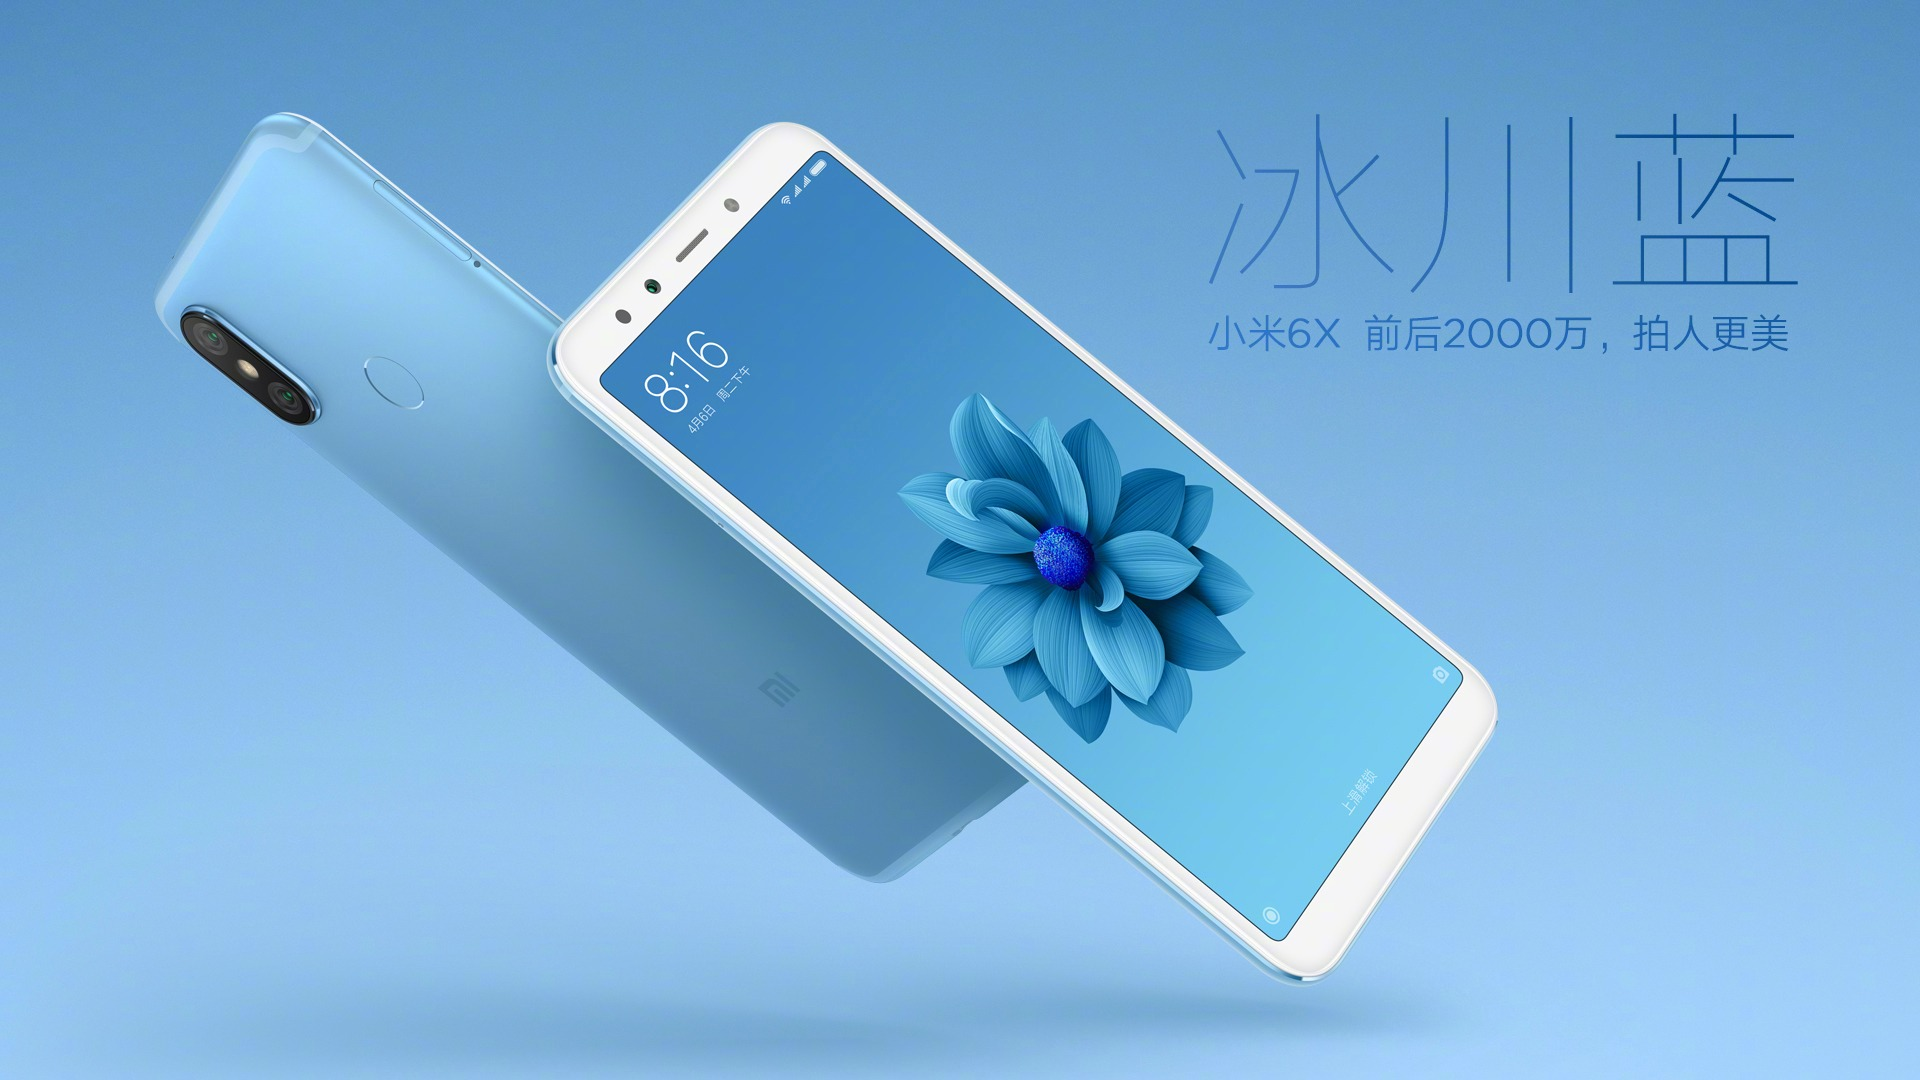 Xiaomi Mi 6X Promo Video Appears Ahead Of Time